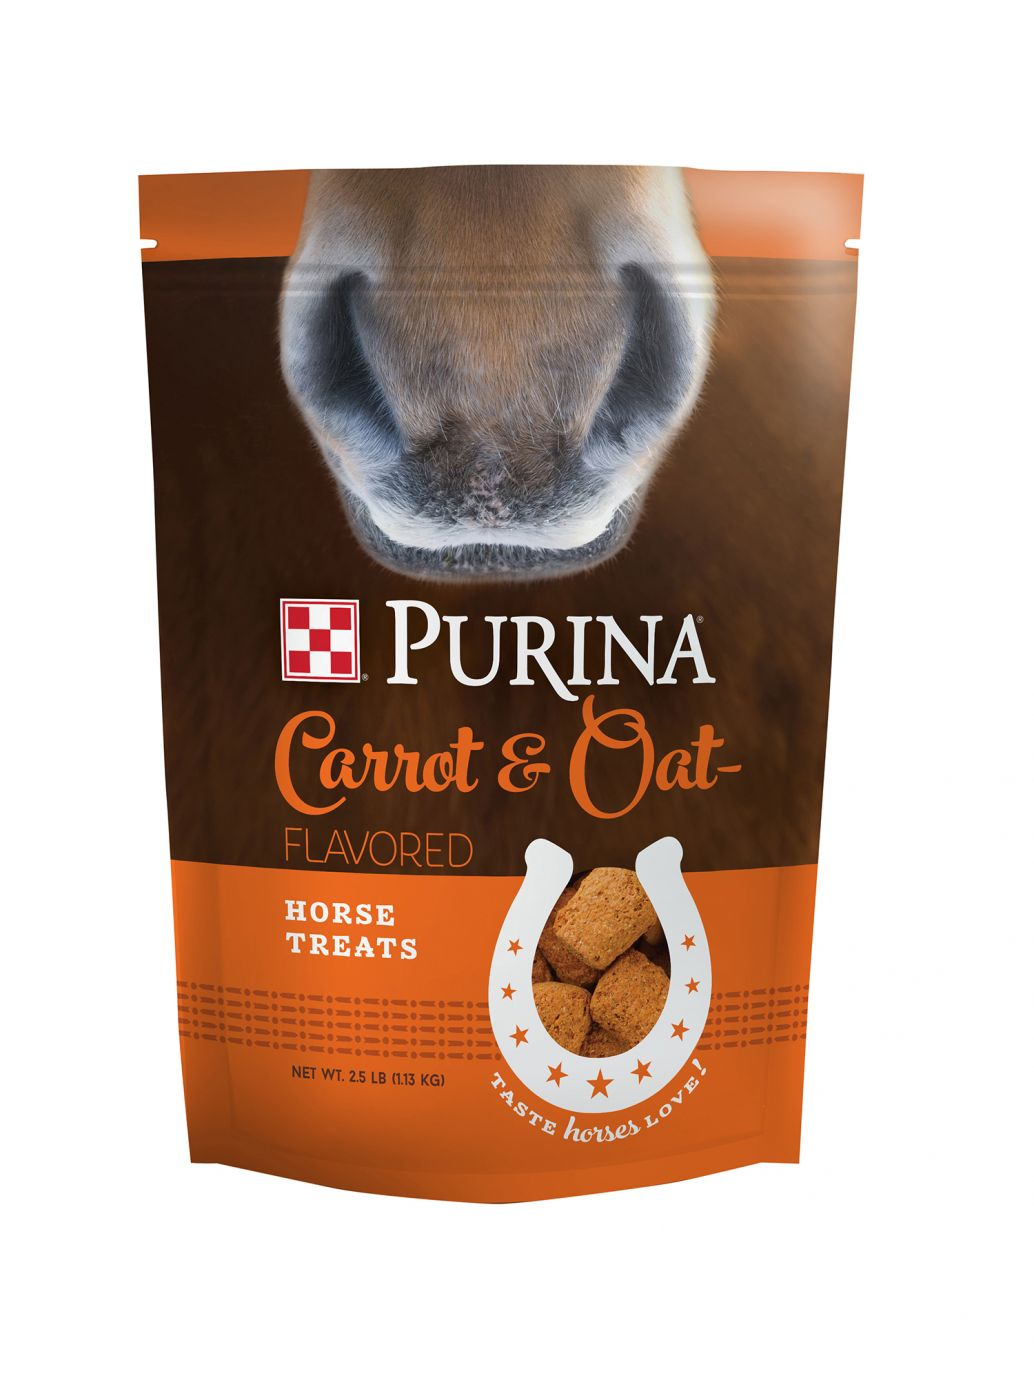 Purina Horse Treats Carrot and Oat